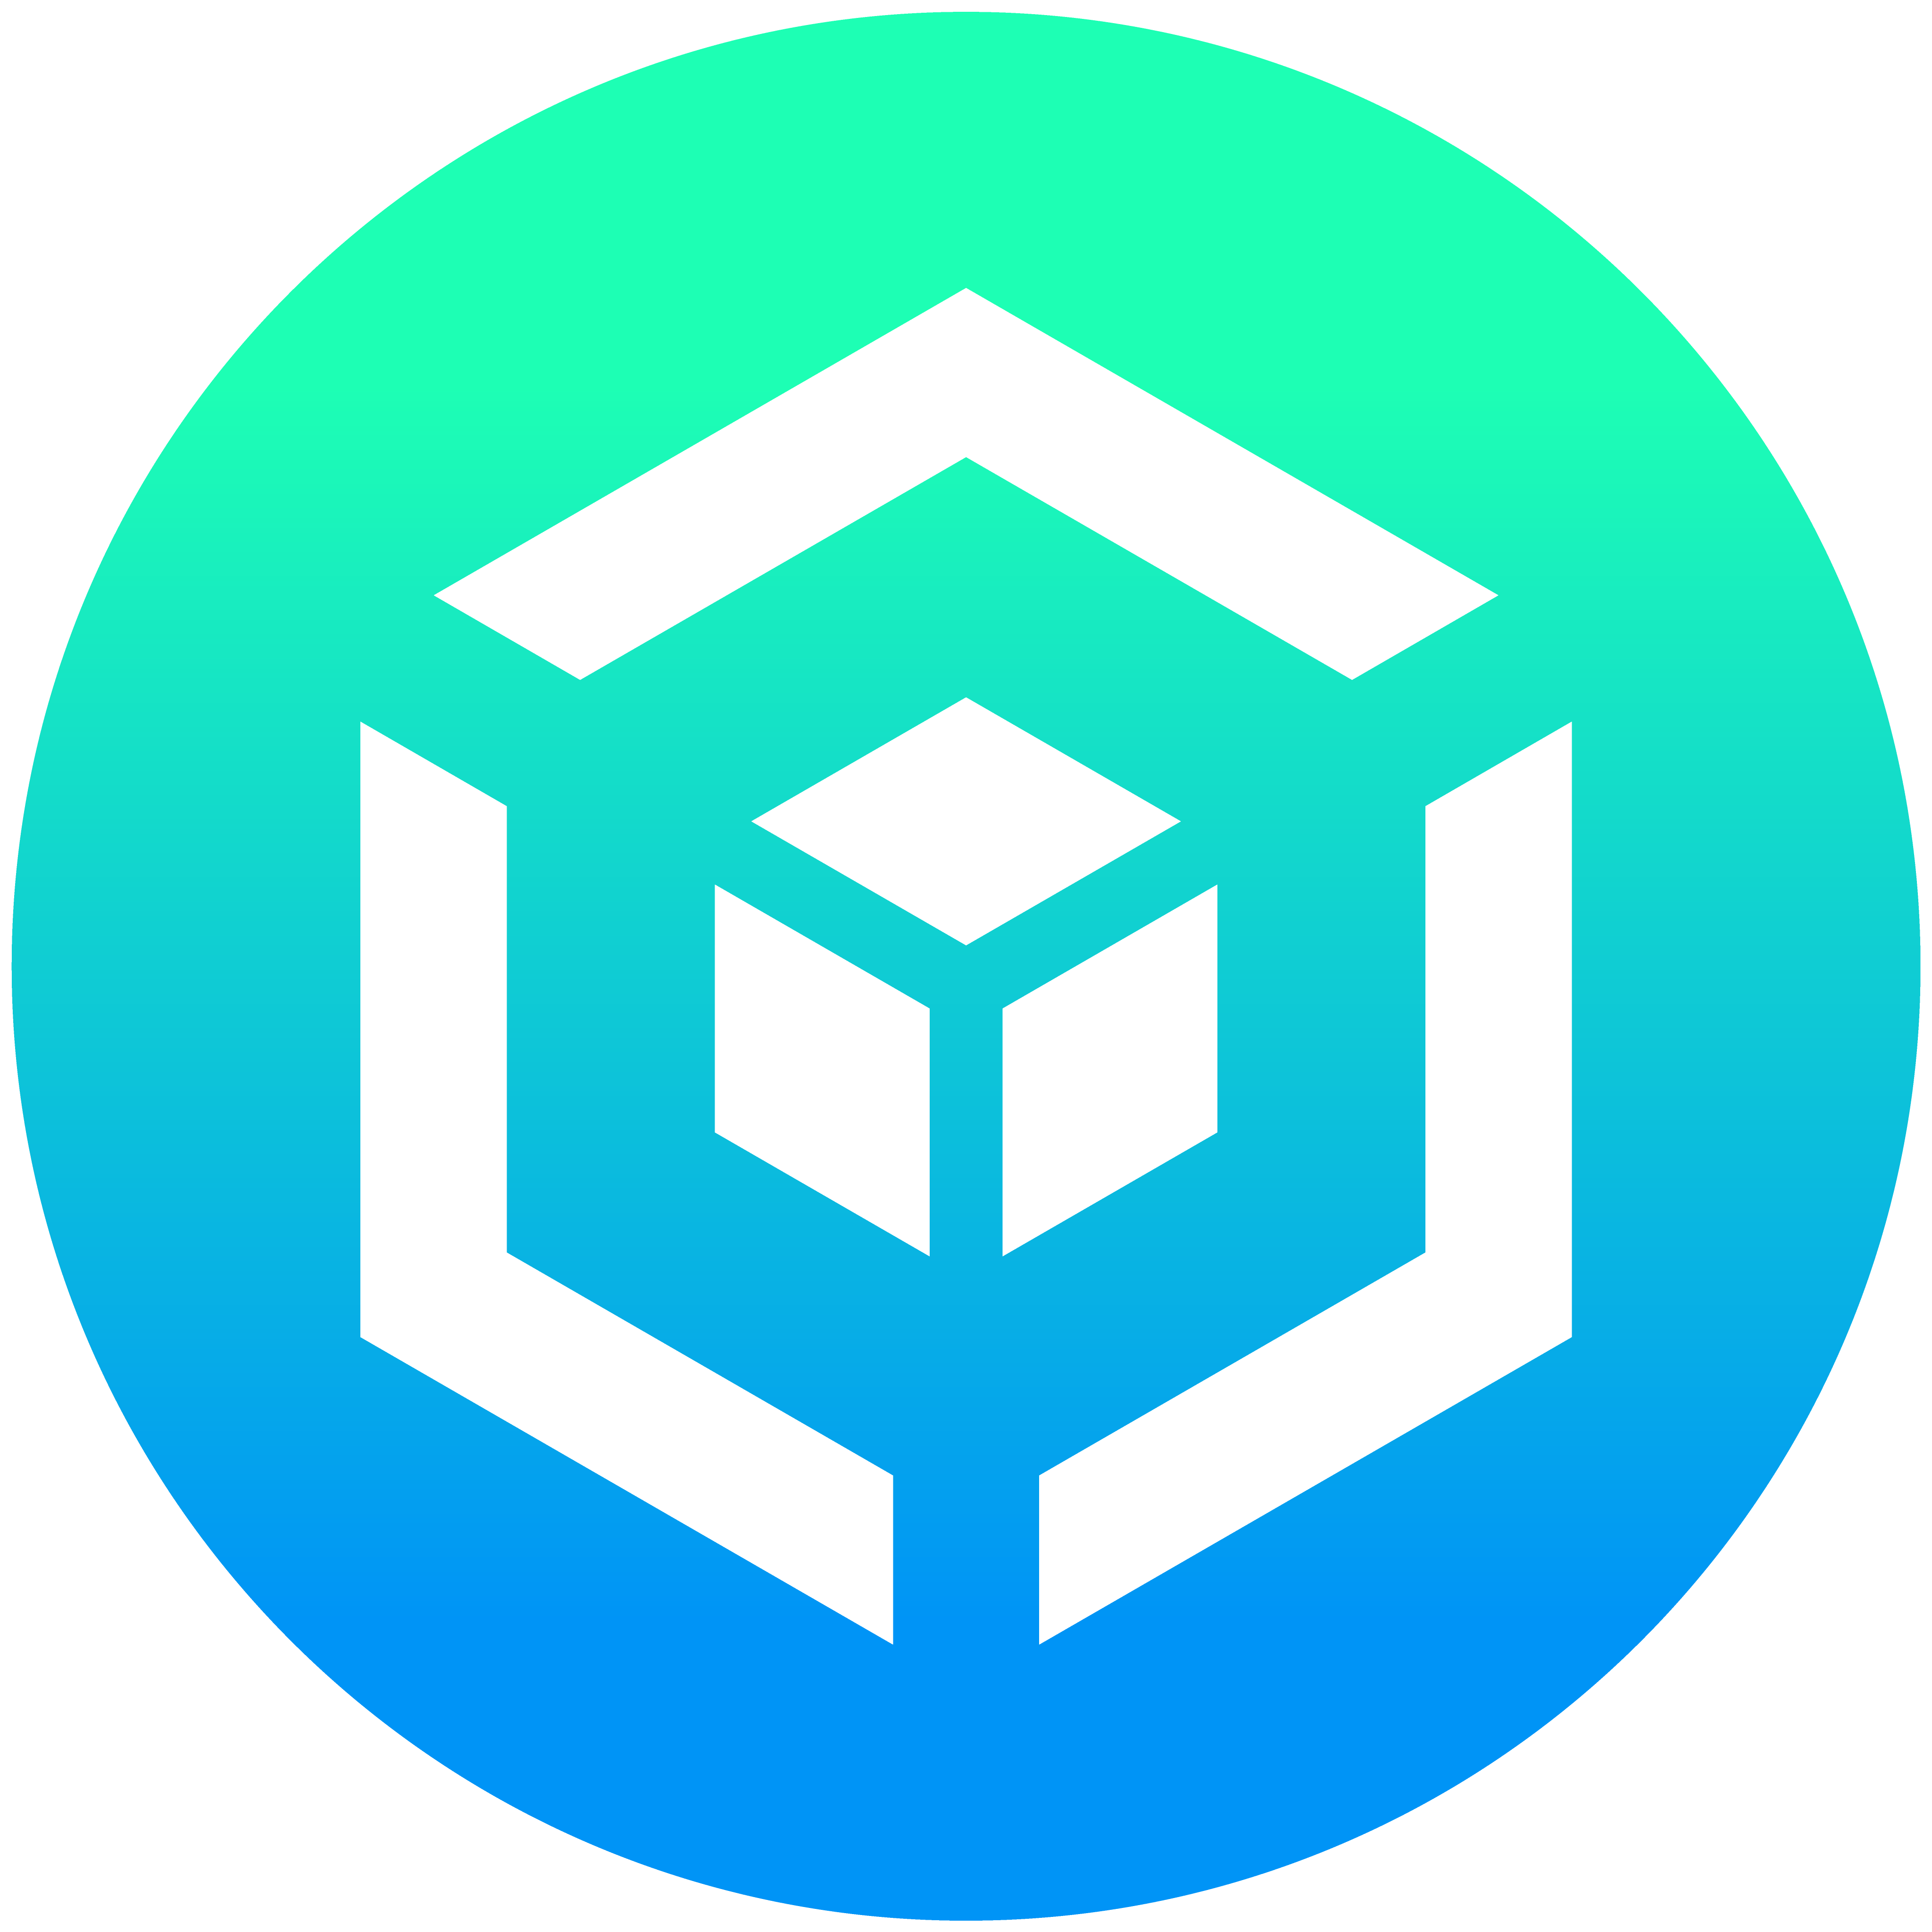 StakeCubeCoin